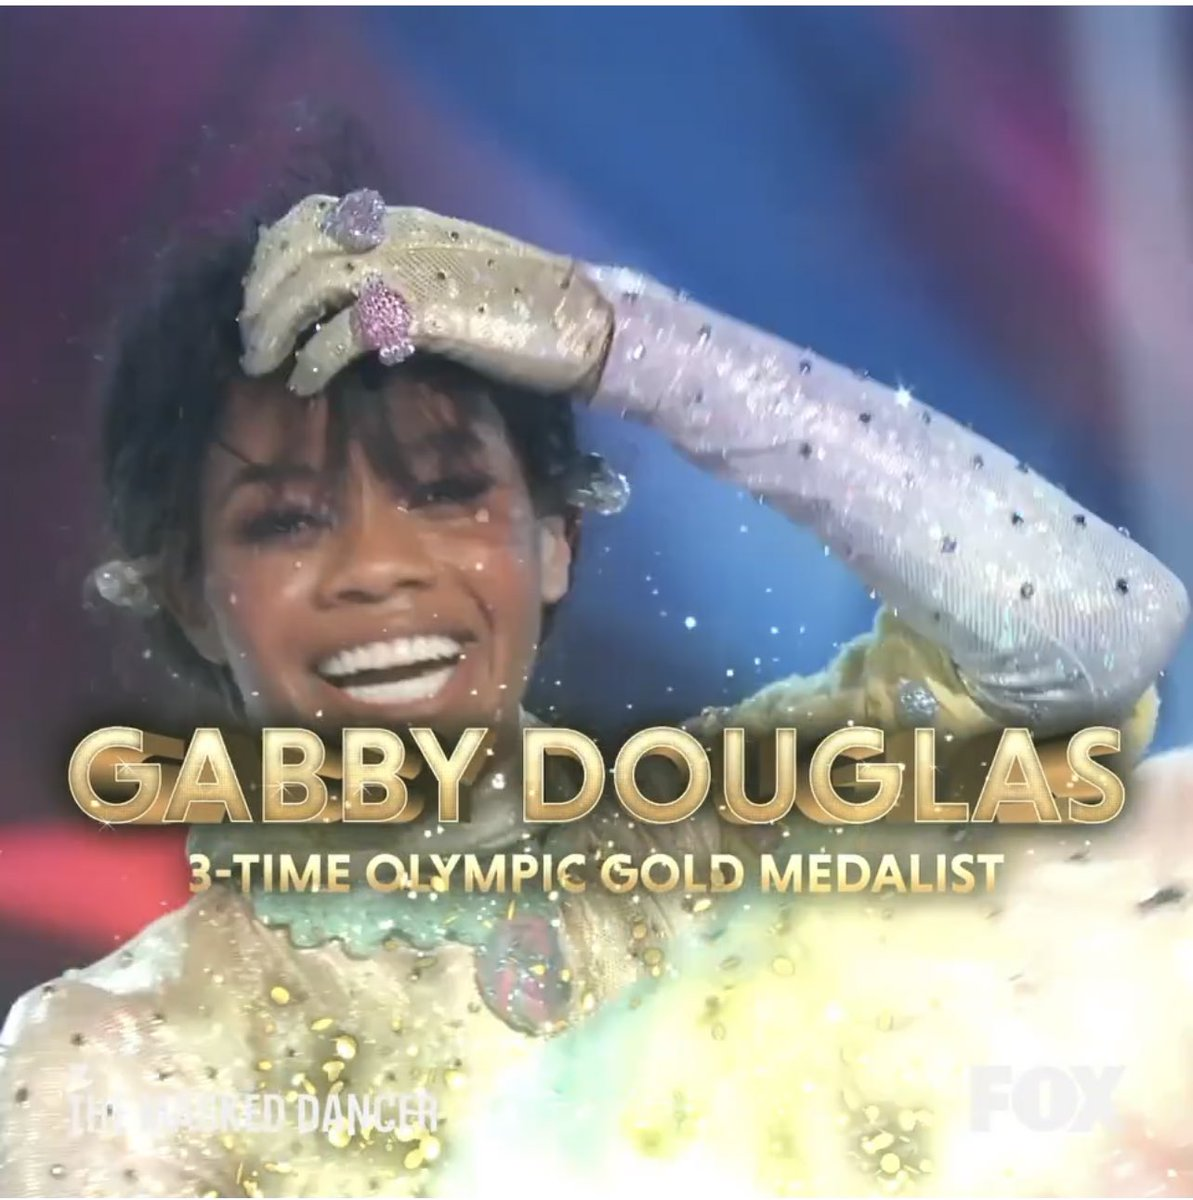 I knew that #CottonCandyMask was either @gabrielledoug or @Simone_Biles and @ashleytisdale guessed Simone and @PaulaAbdul guessed Gabby and the Winner of #TheMaskedDancer was Unmasked as Gabby Douglas